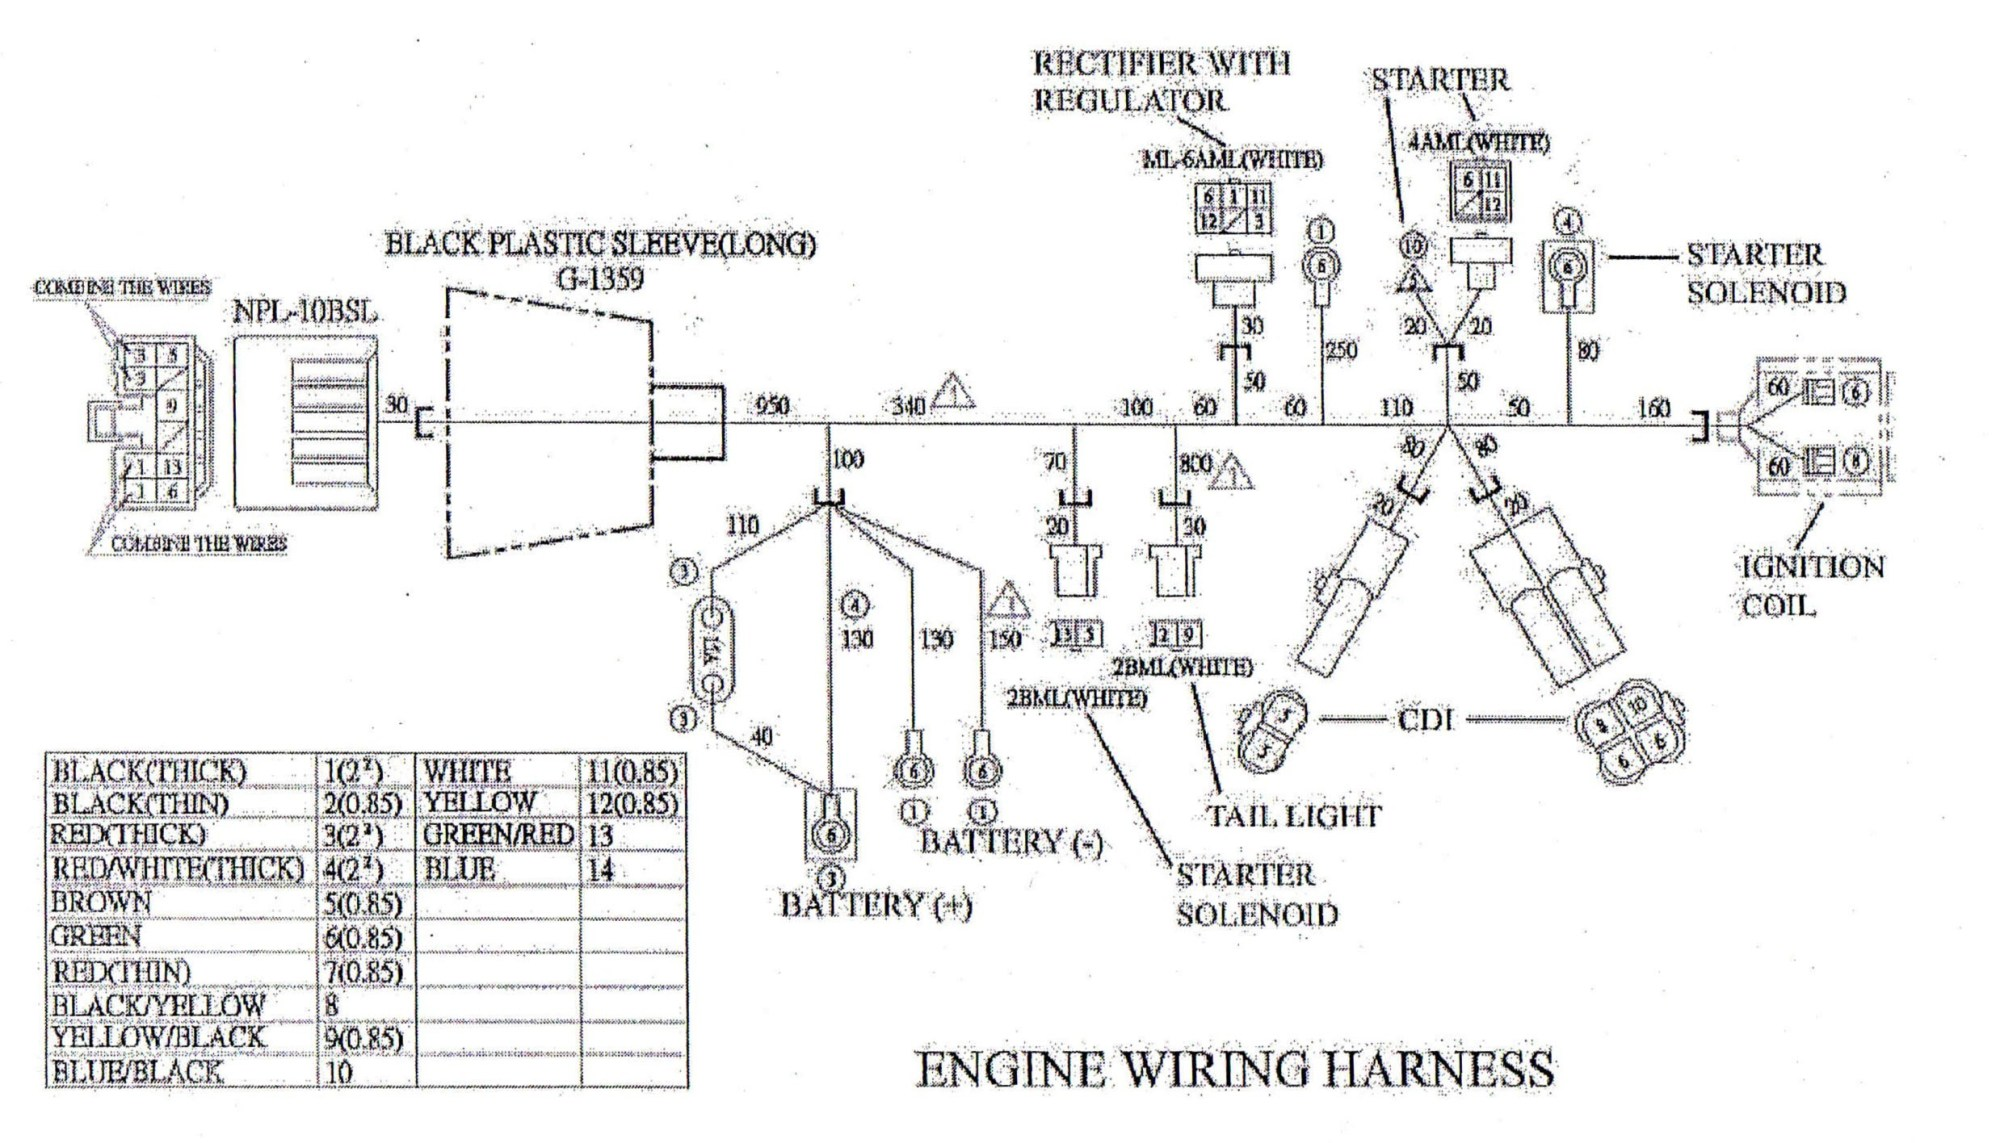 hight resolution of wrg 3427 l5 20p wiring diagraml5 20 wiring diagram schematic diagrams rh ogmconsulting co